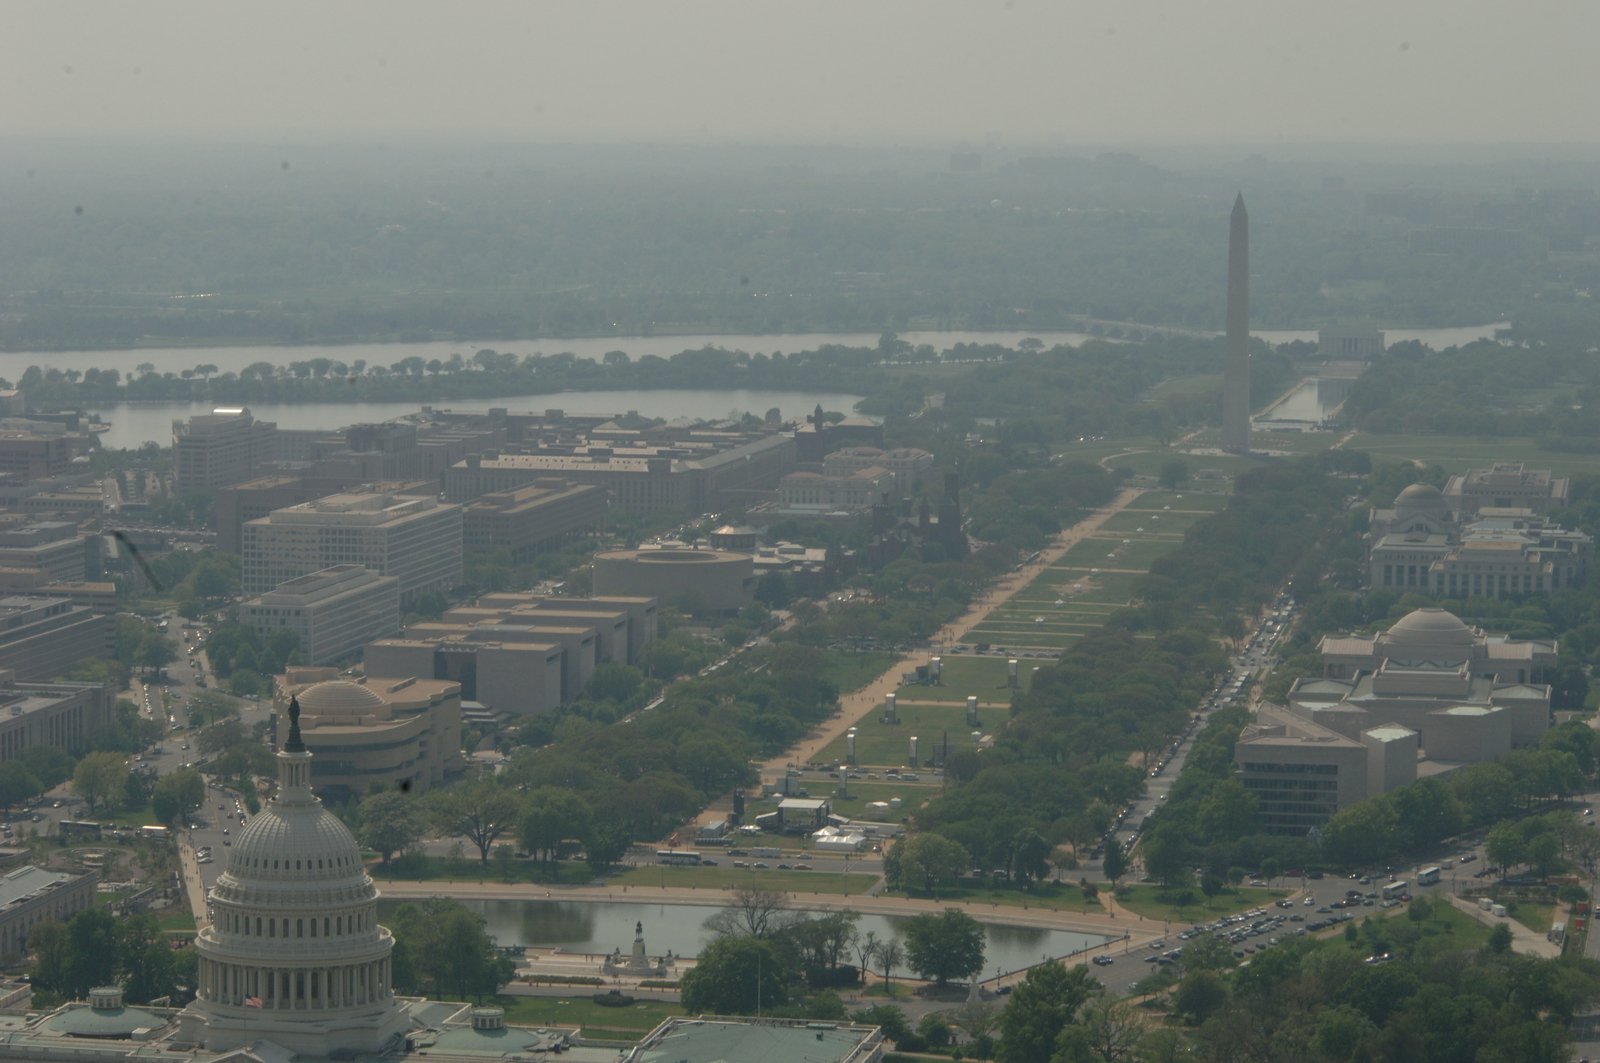 [Assignment: 48-DPA-04-25-08_SOI_K_USPP_Fly] Aerial views of Washington, D.C. [buildings, monuments, landscapes, taken during ride by] Secretary Dirk Kempthorne [and aides on] U.S. Park Police helicopter [48-DPA-04-25-08_SOI_K_USPP_Fly_DOI_2918.JPG]